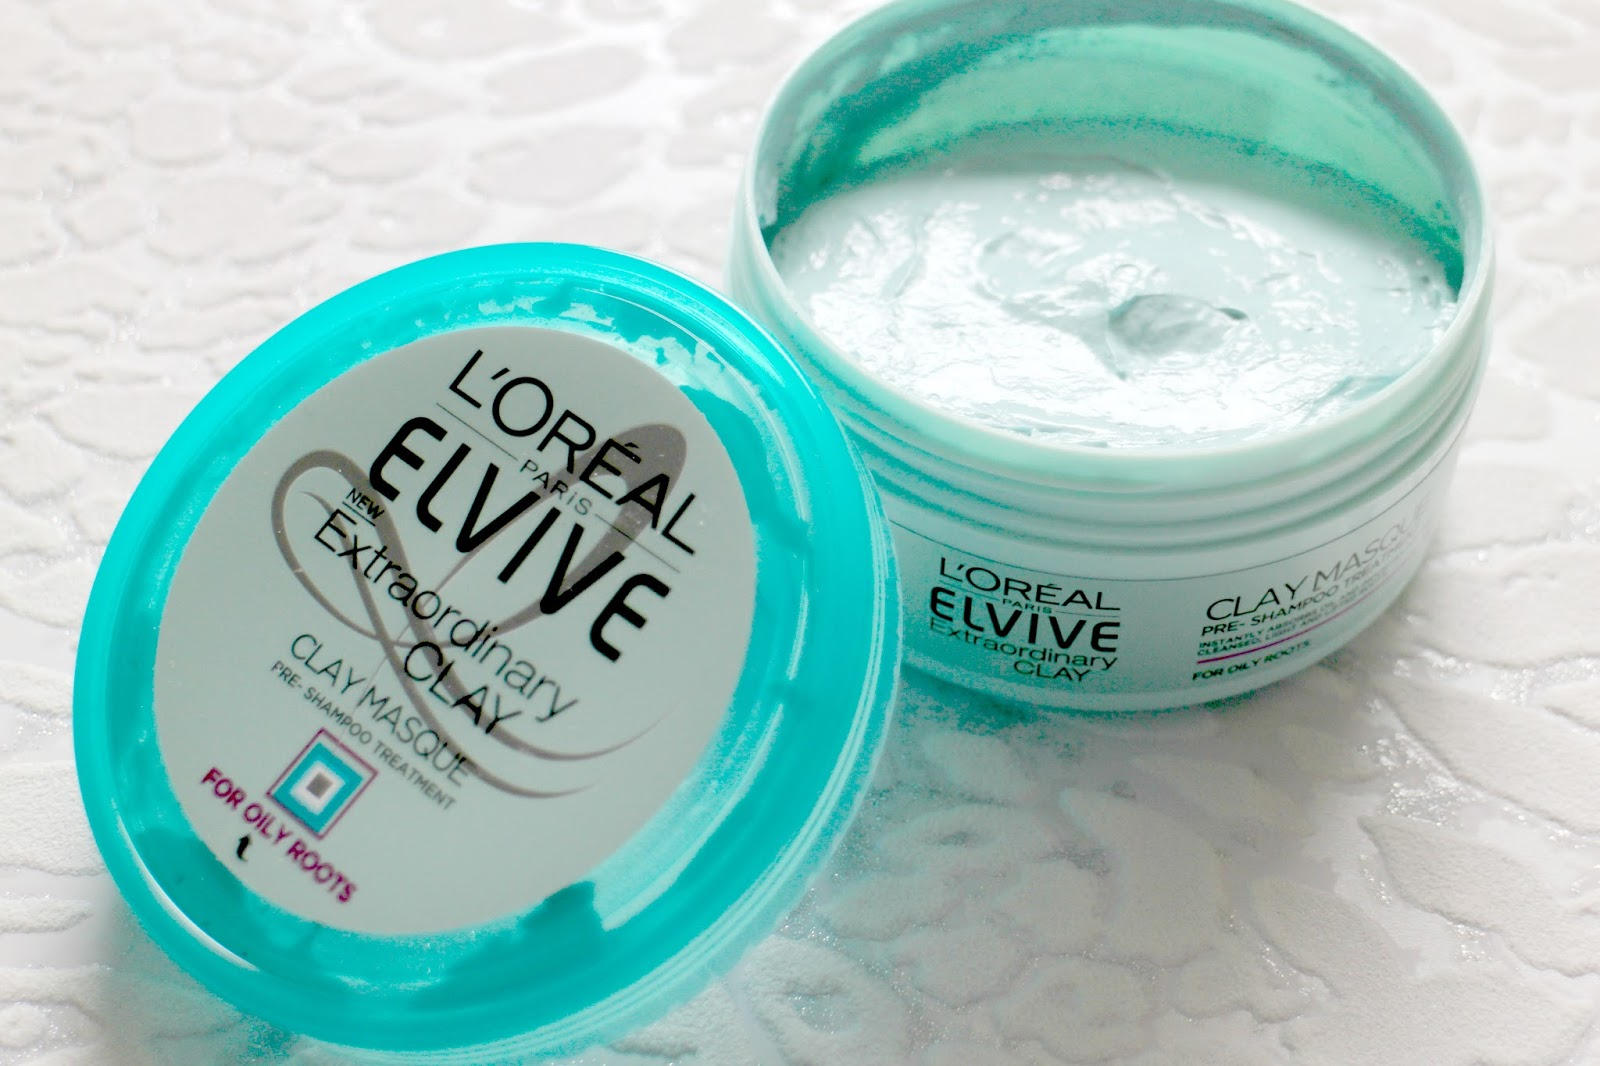 L'Oreal Elvive Extraordinary Clay Masque